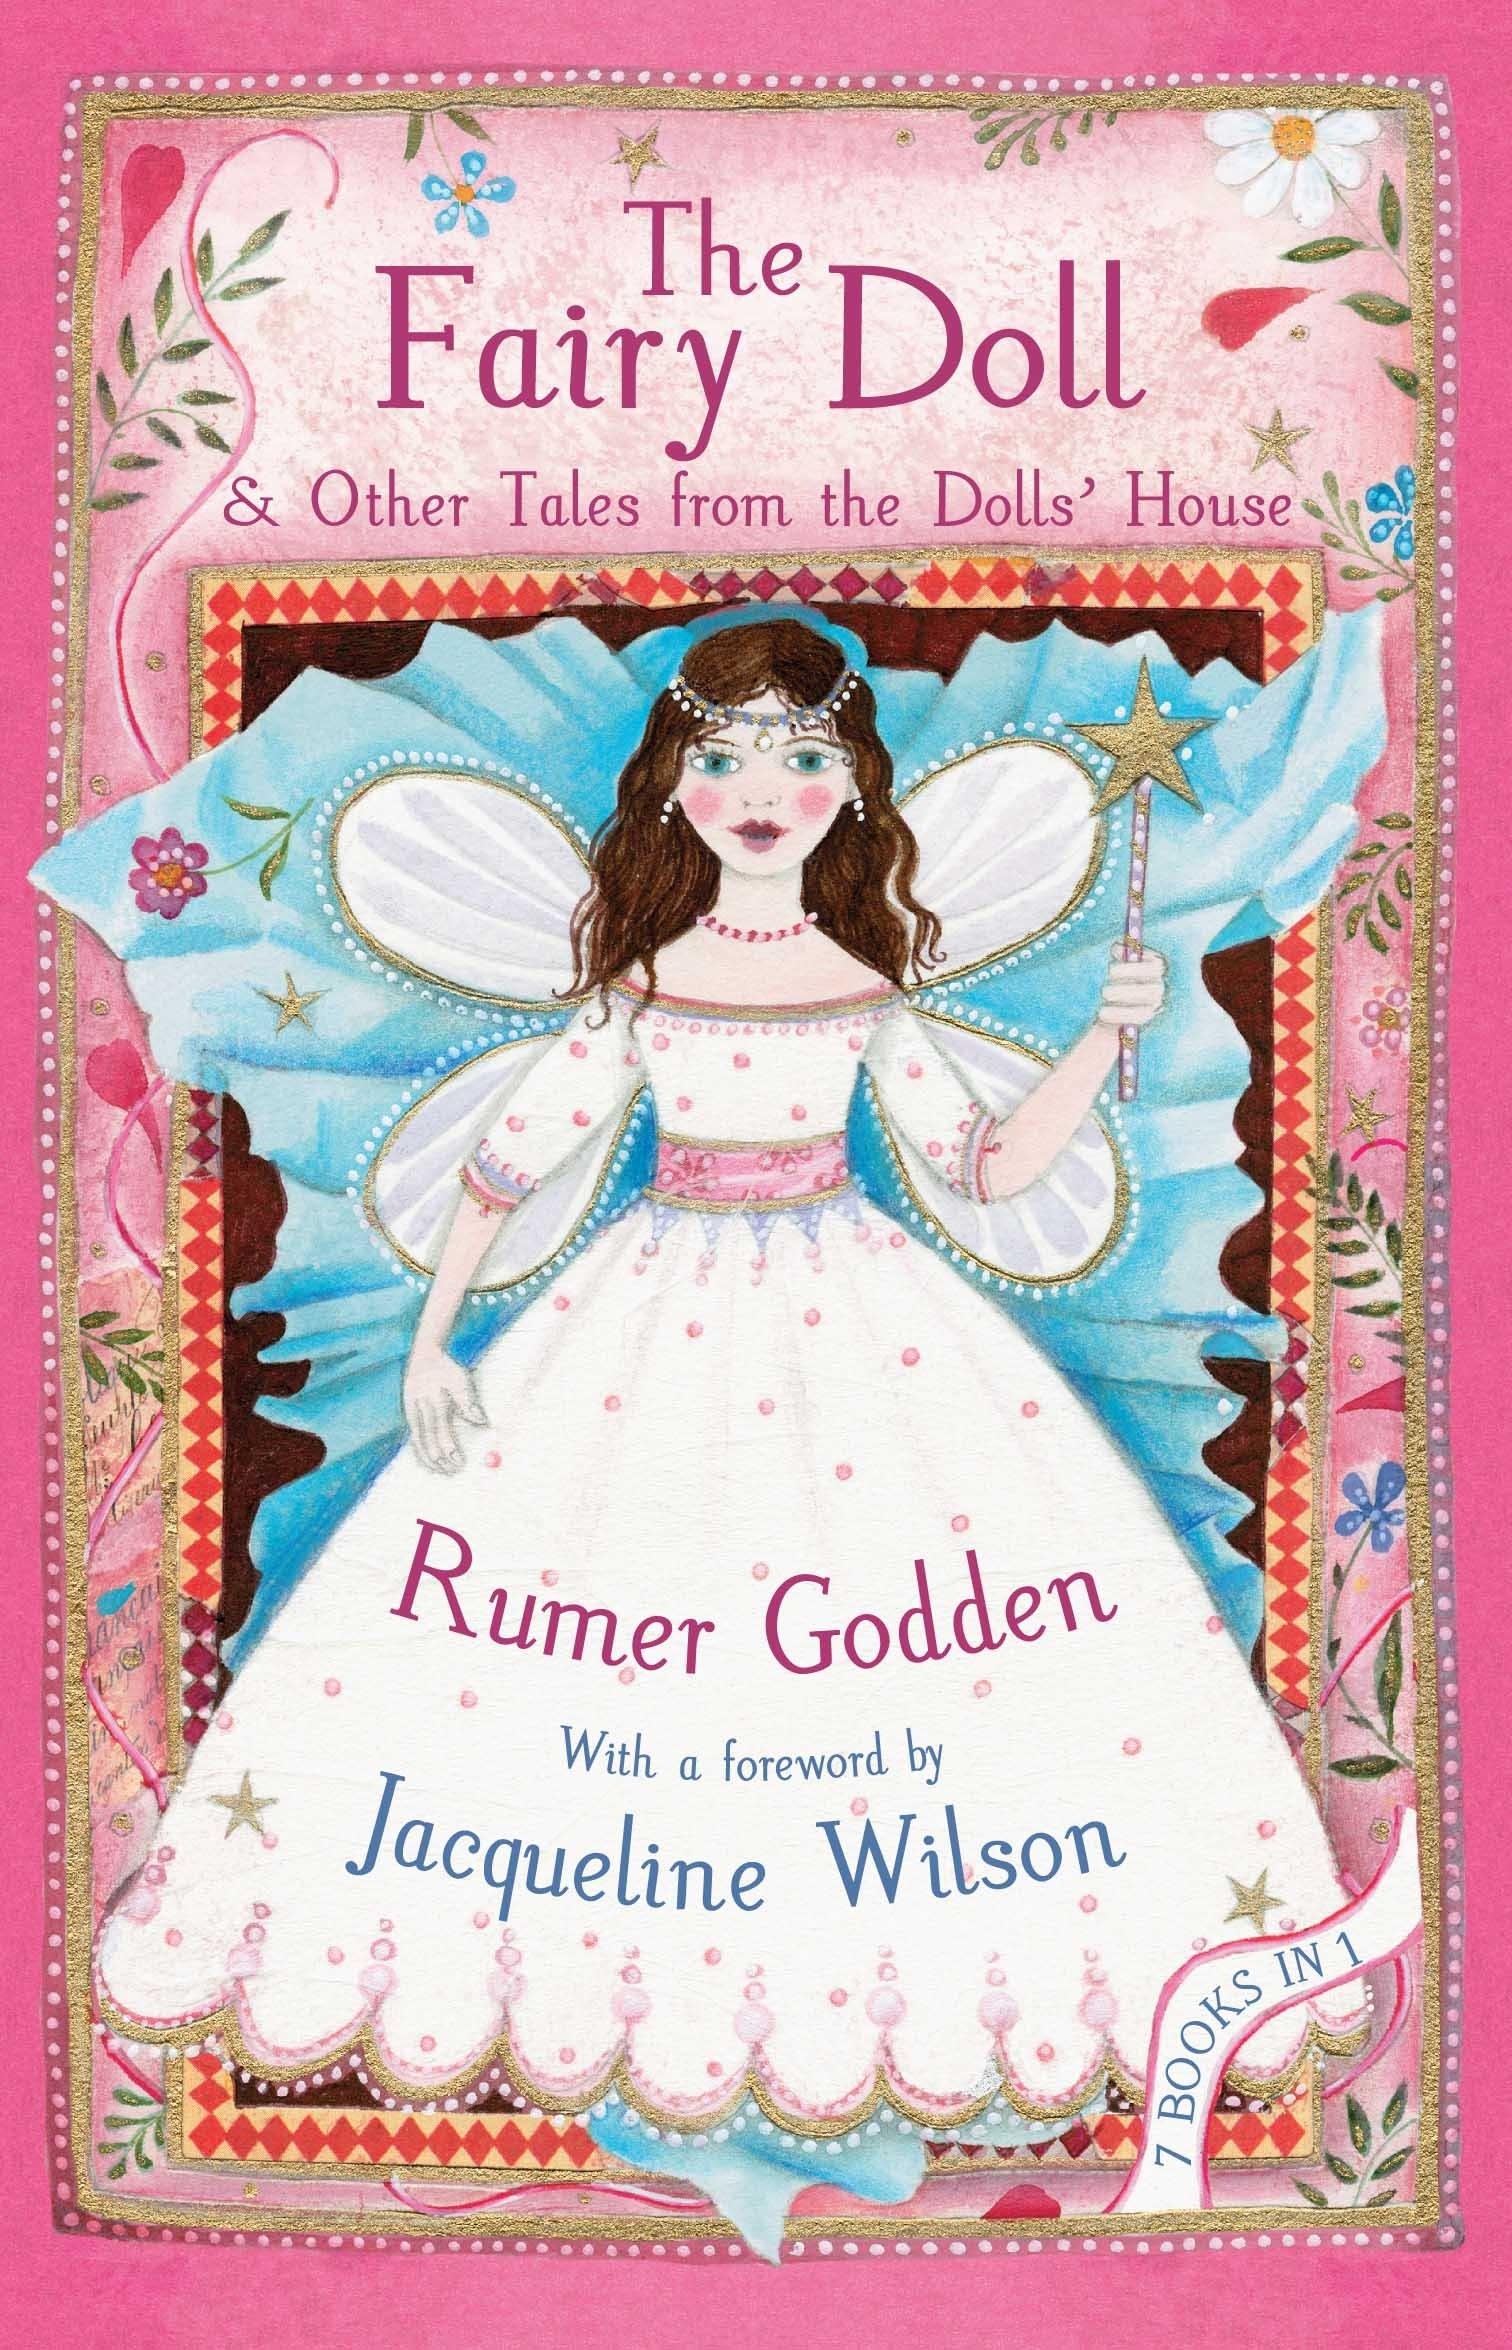 The Fairy Doll: & Other Tales from the Dolls' House ebook